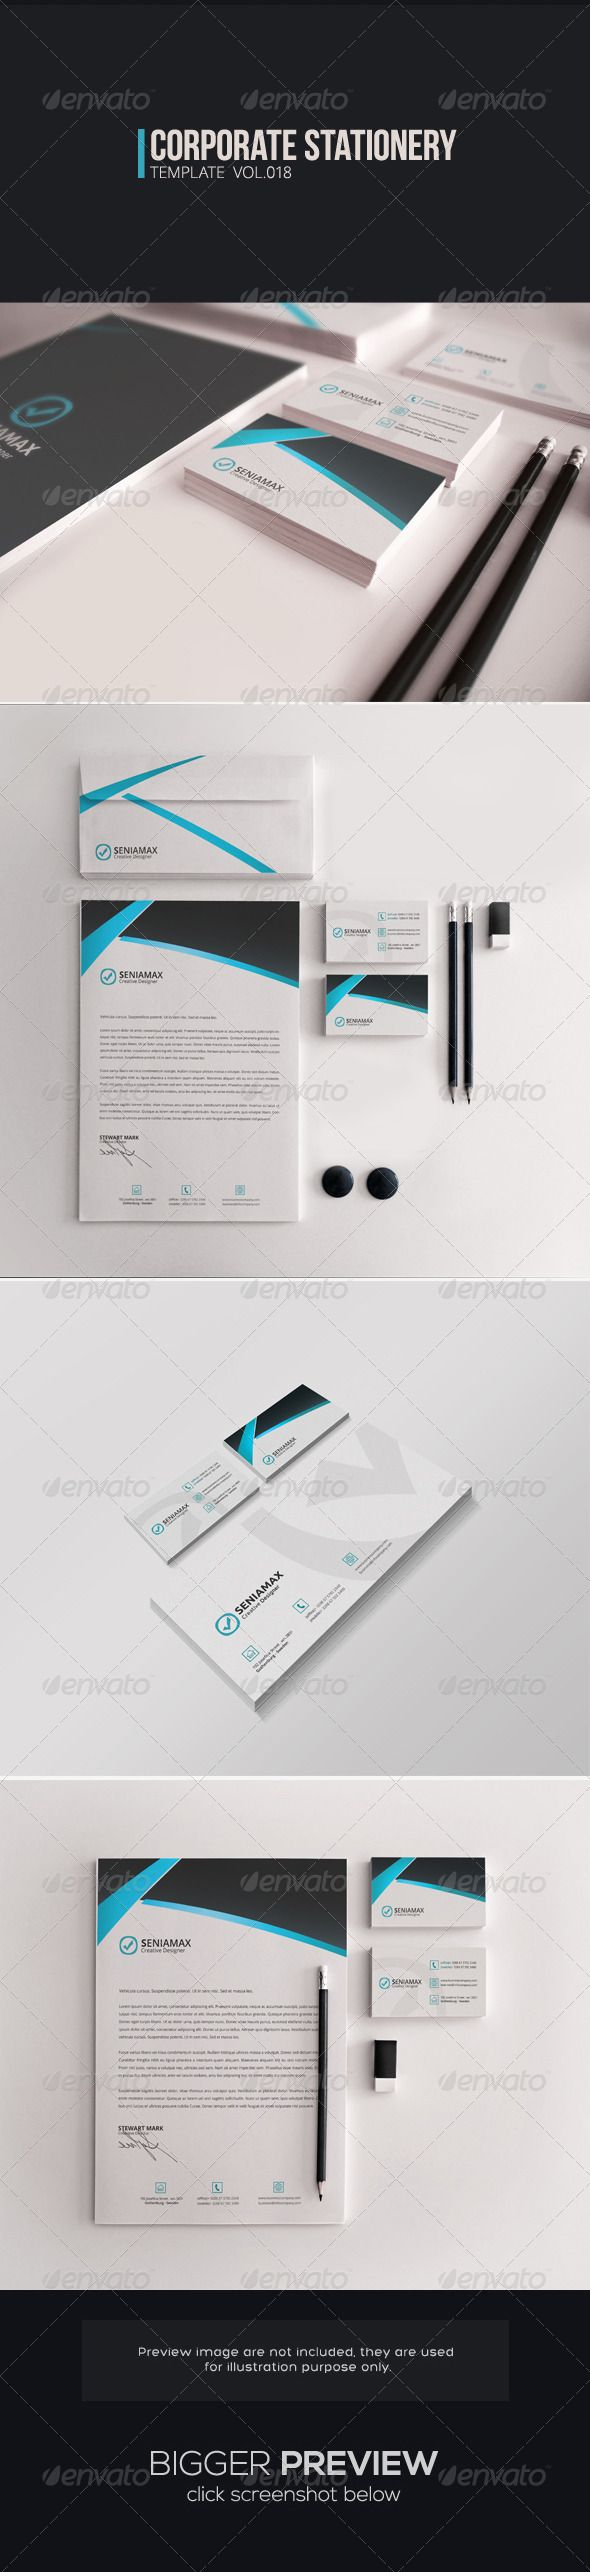 Corporate stationery vol18 graphicriver details fully editable corporate stationery vol18 graphicriver details fully editable files presentation folder 912 in 2 sides 1 side lett layout guides pinte reheart Gallery